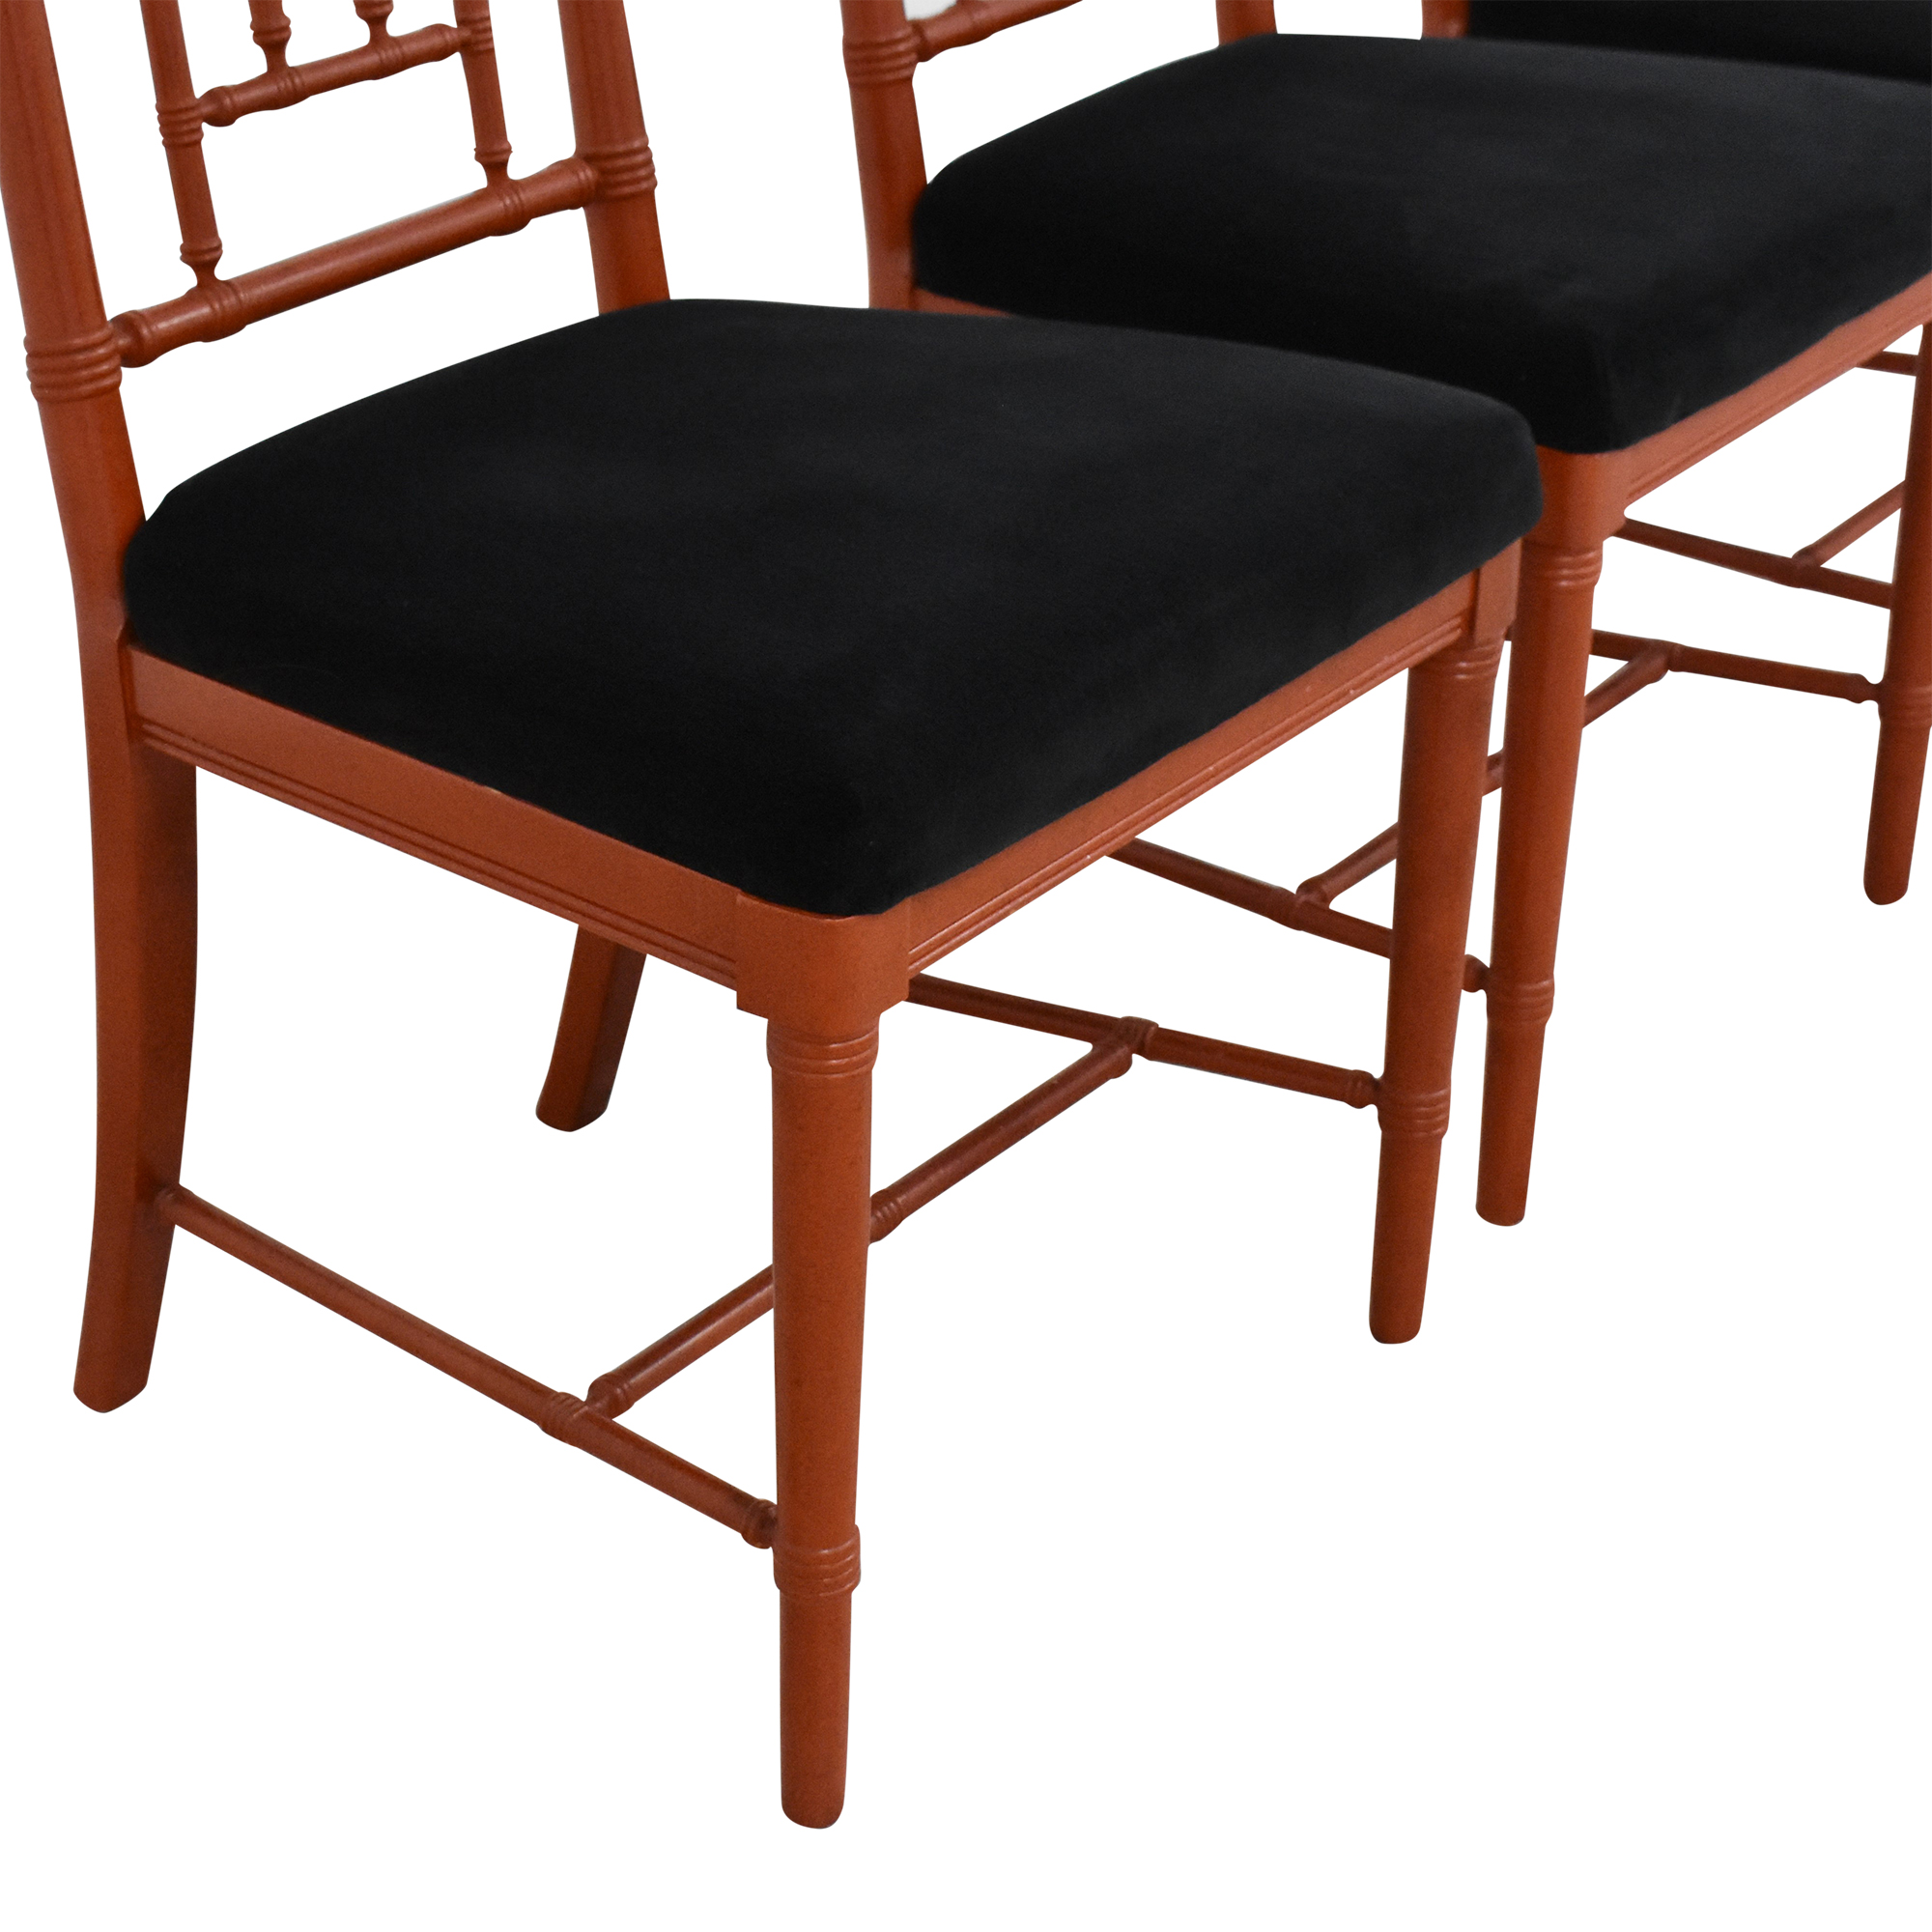 66 Off Custom Upholstered Dining Chairs Chairs